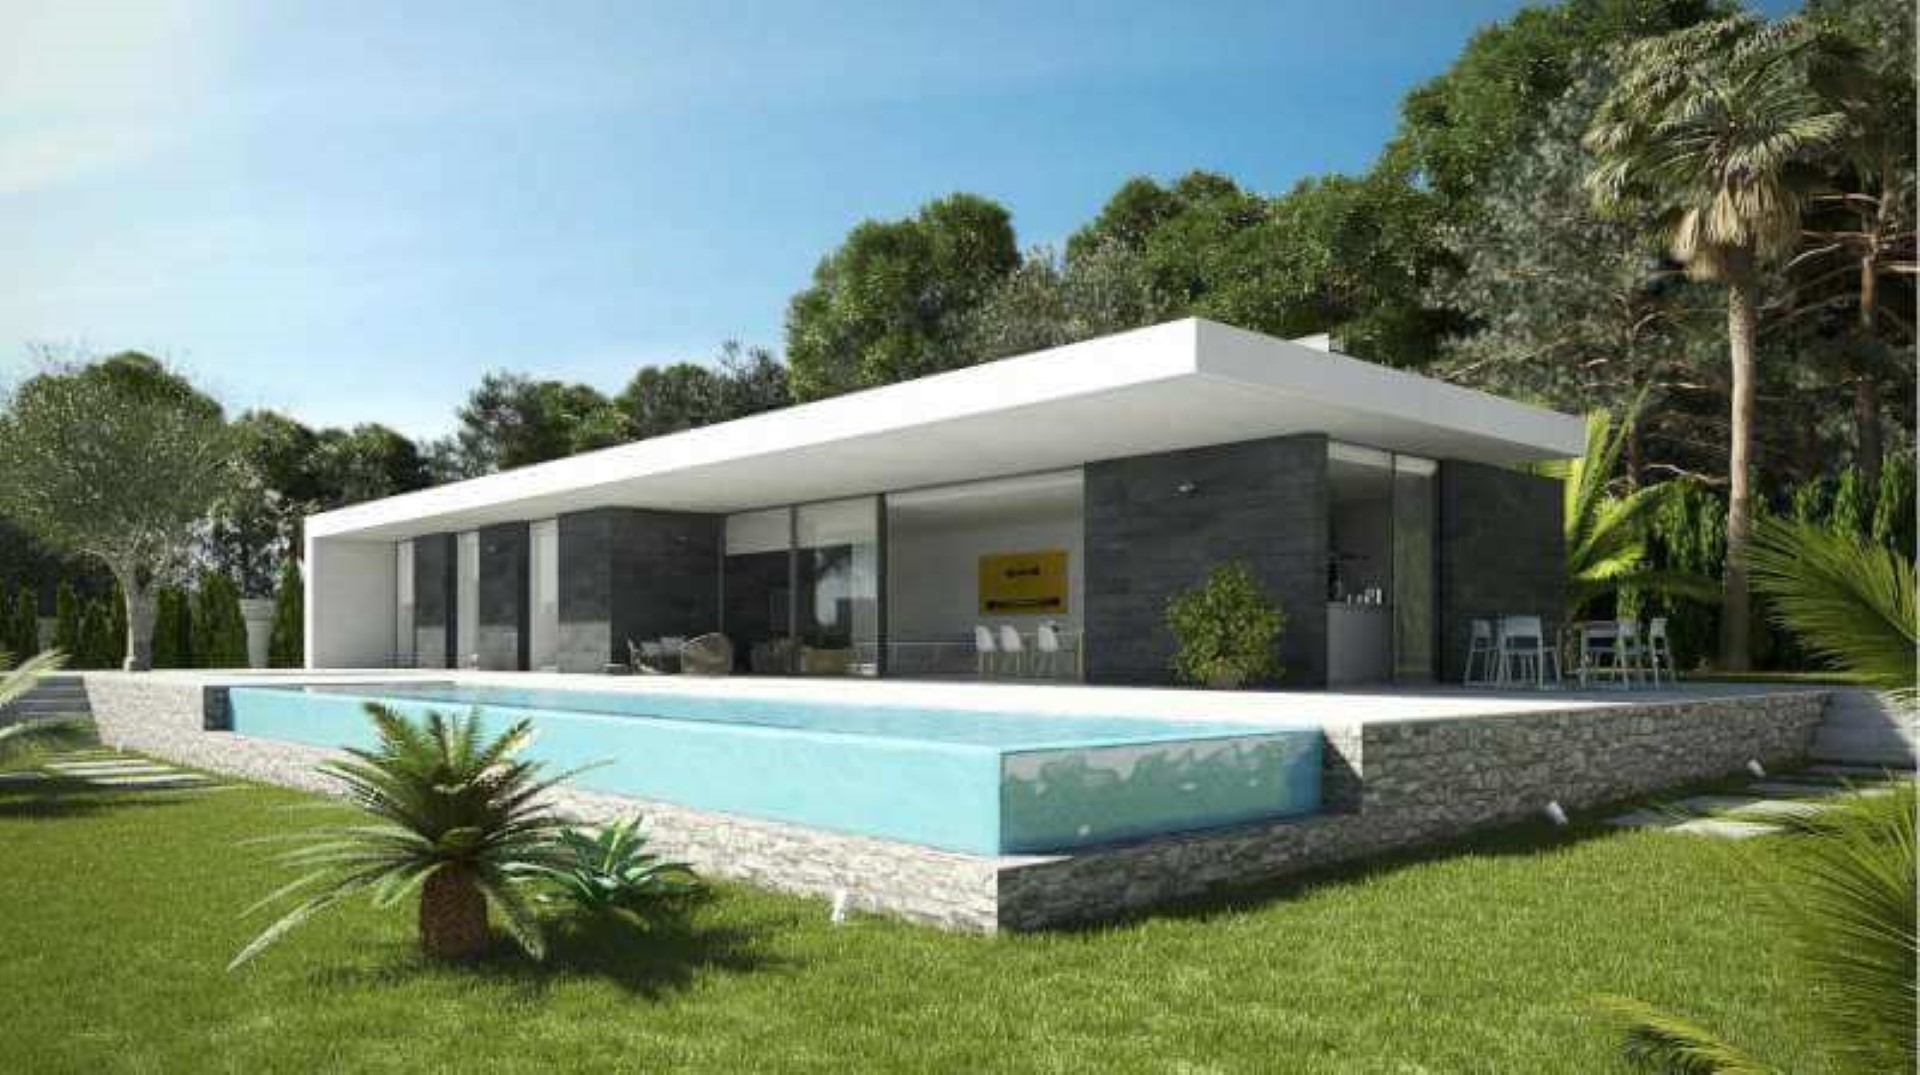 3 Bedroom Villa in Pedreguer